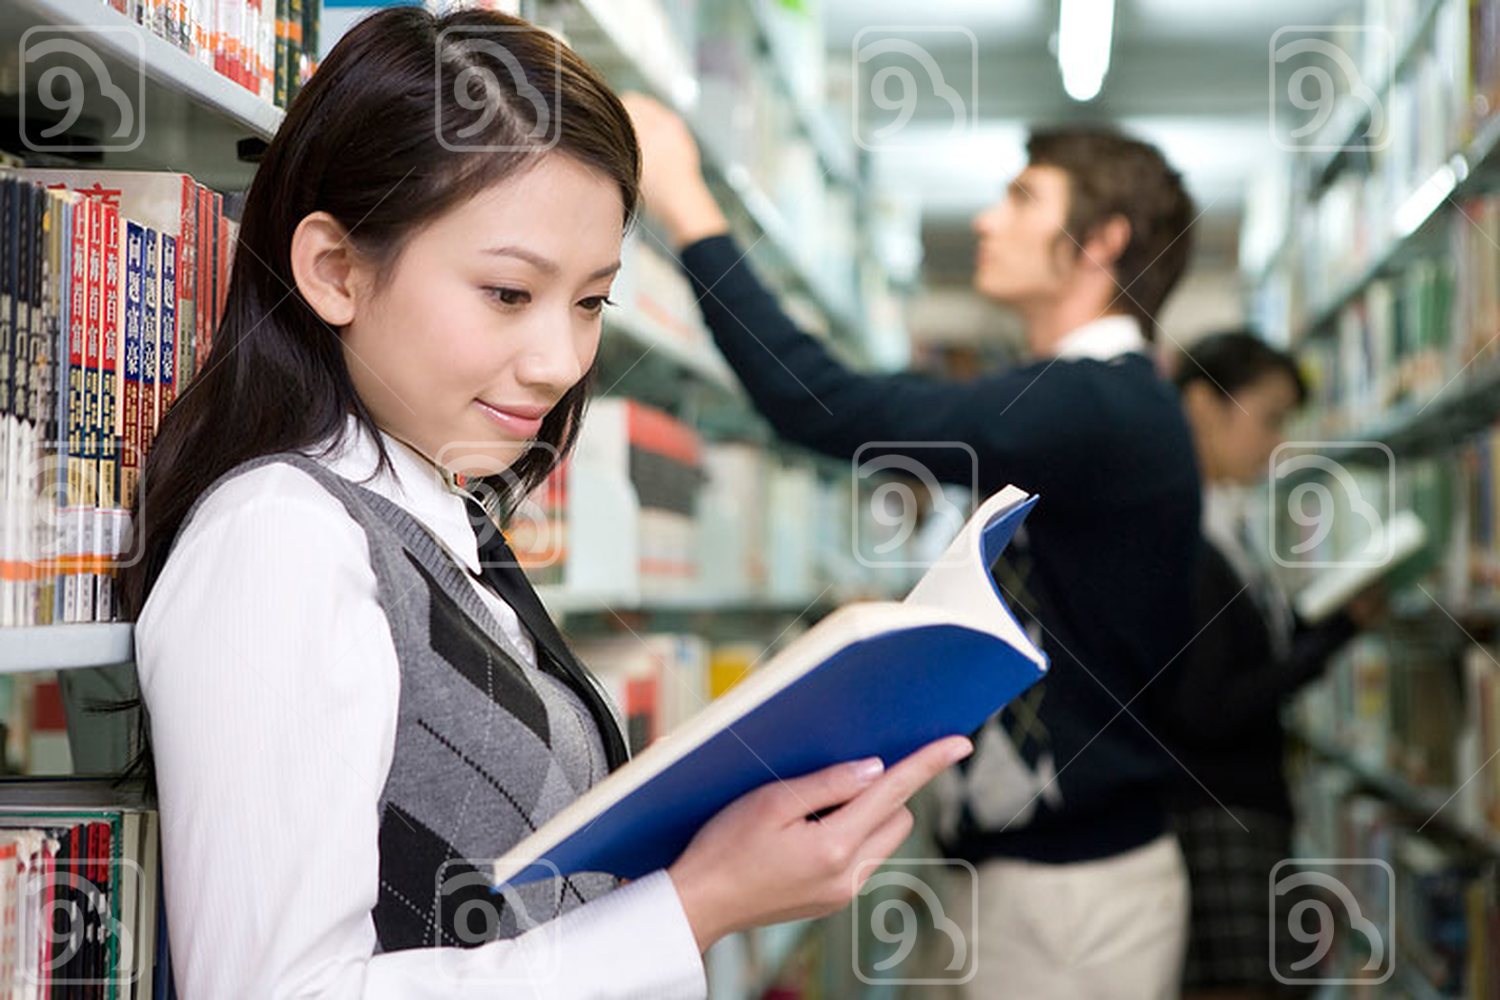 Chinese students in the library